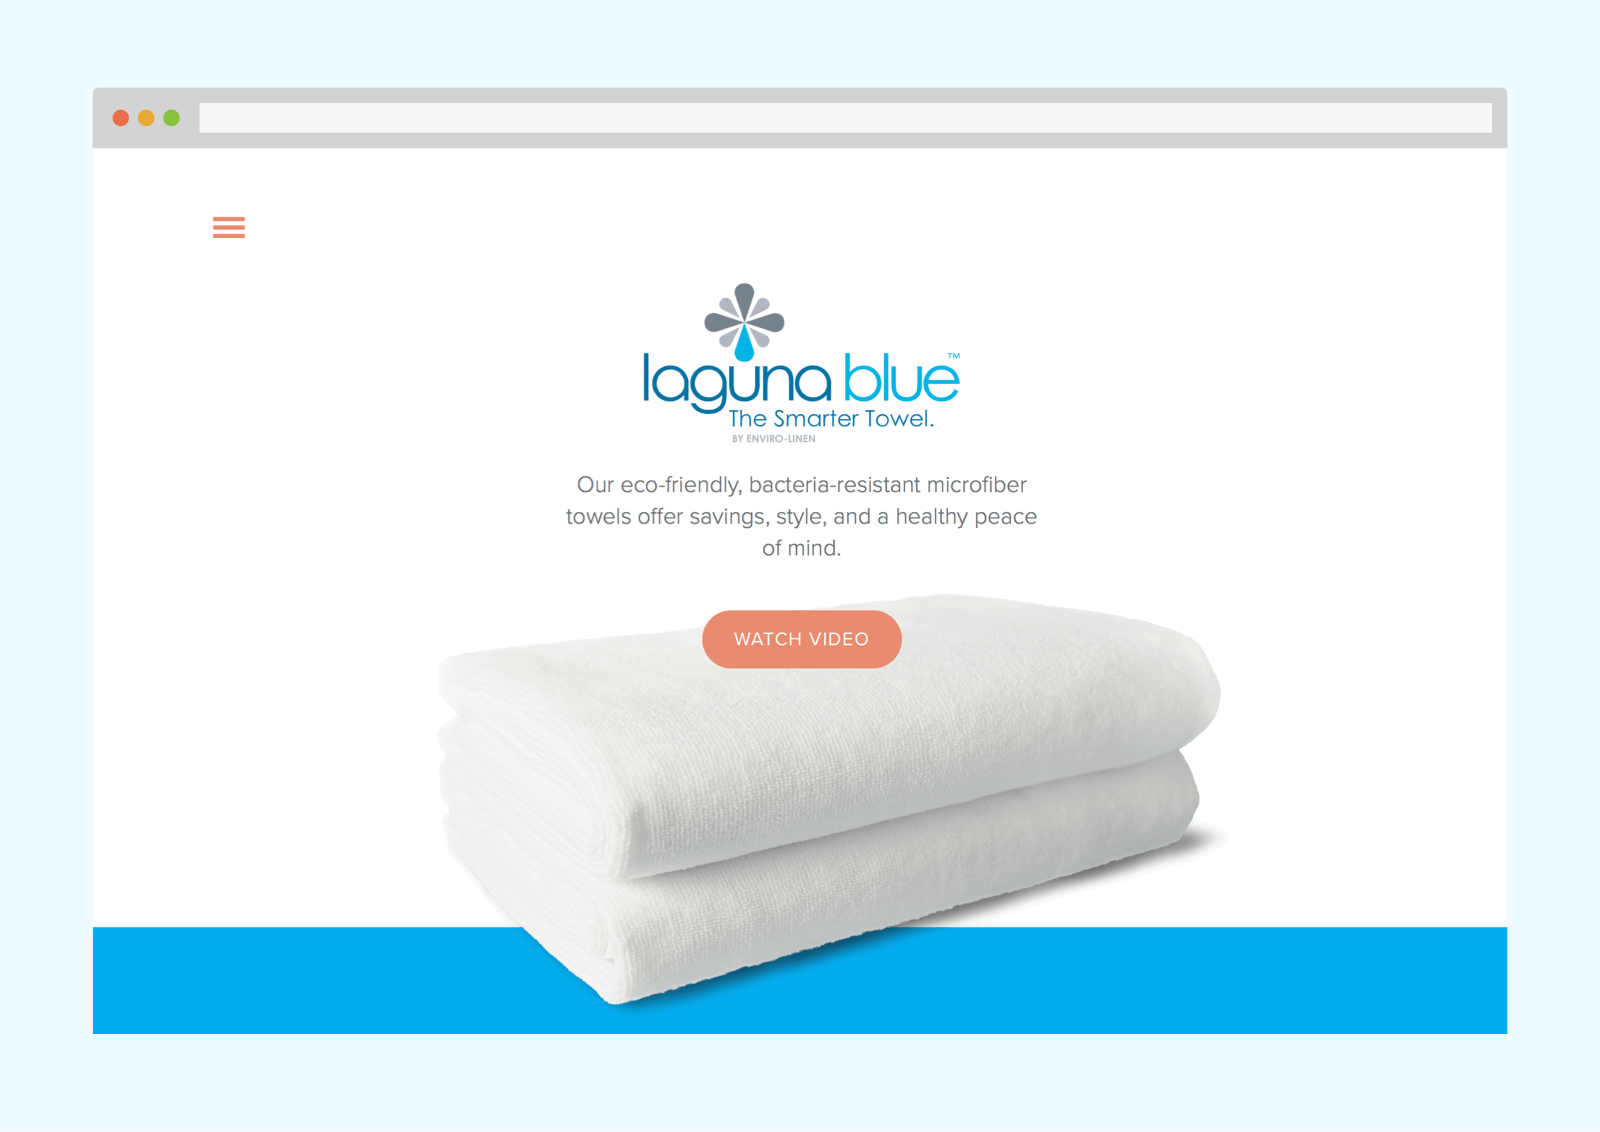 Homepage features stark design with large, cut out photo of towel